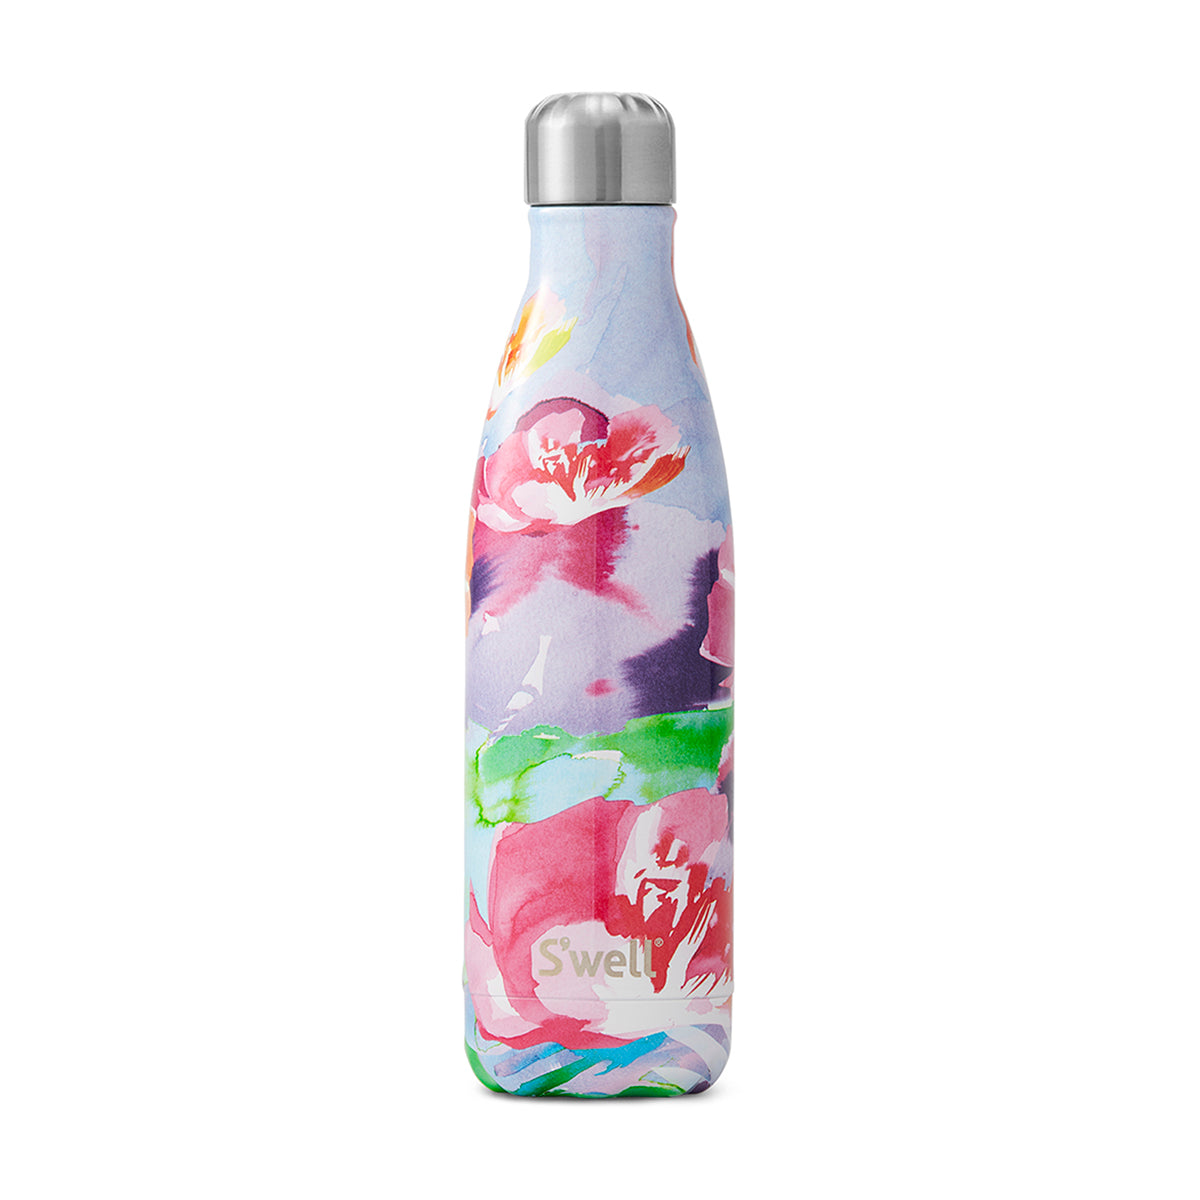 S'Well: Water Colour Floral Collection - 500ml Lilac Posy